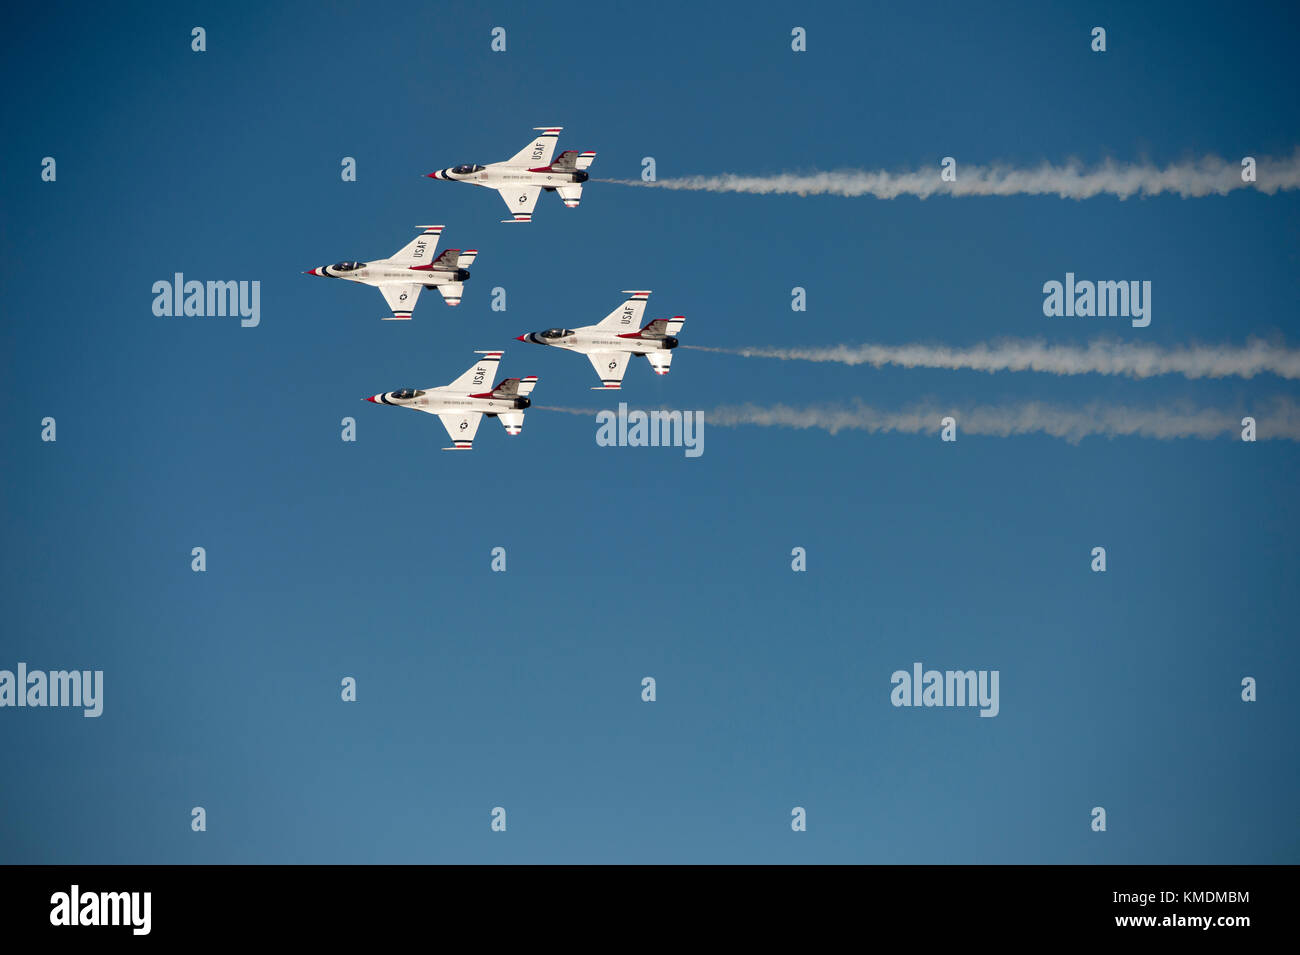 USAF Thunderbirds flying in the 'diamond opener' formation at the Gowen Thunder Airshow on October 14 2017 - Stock Image